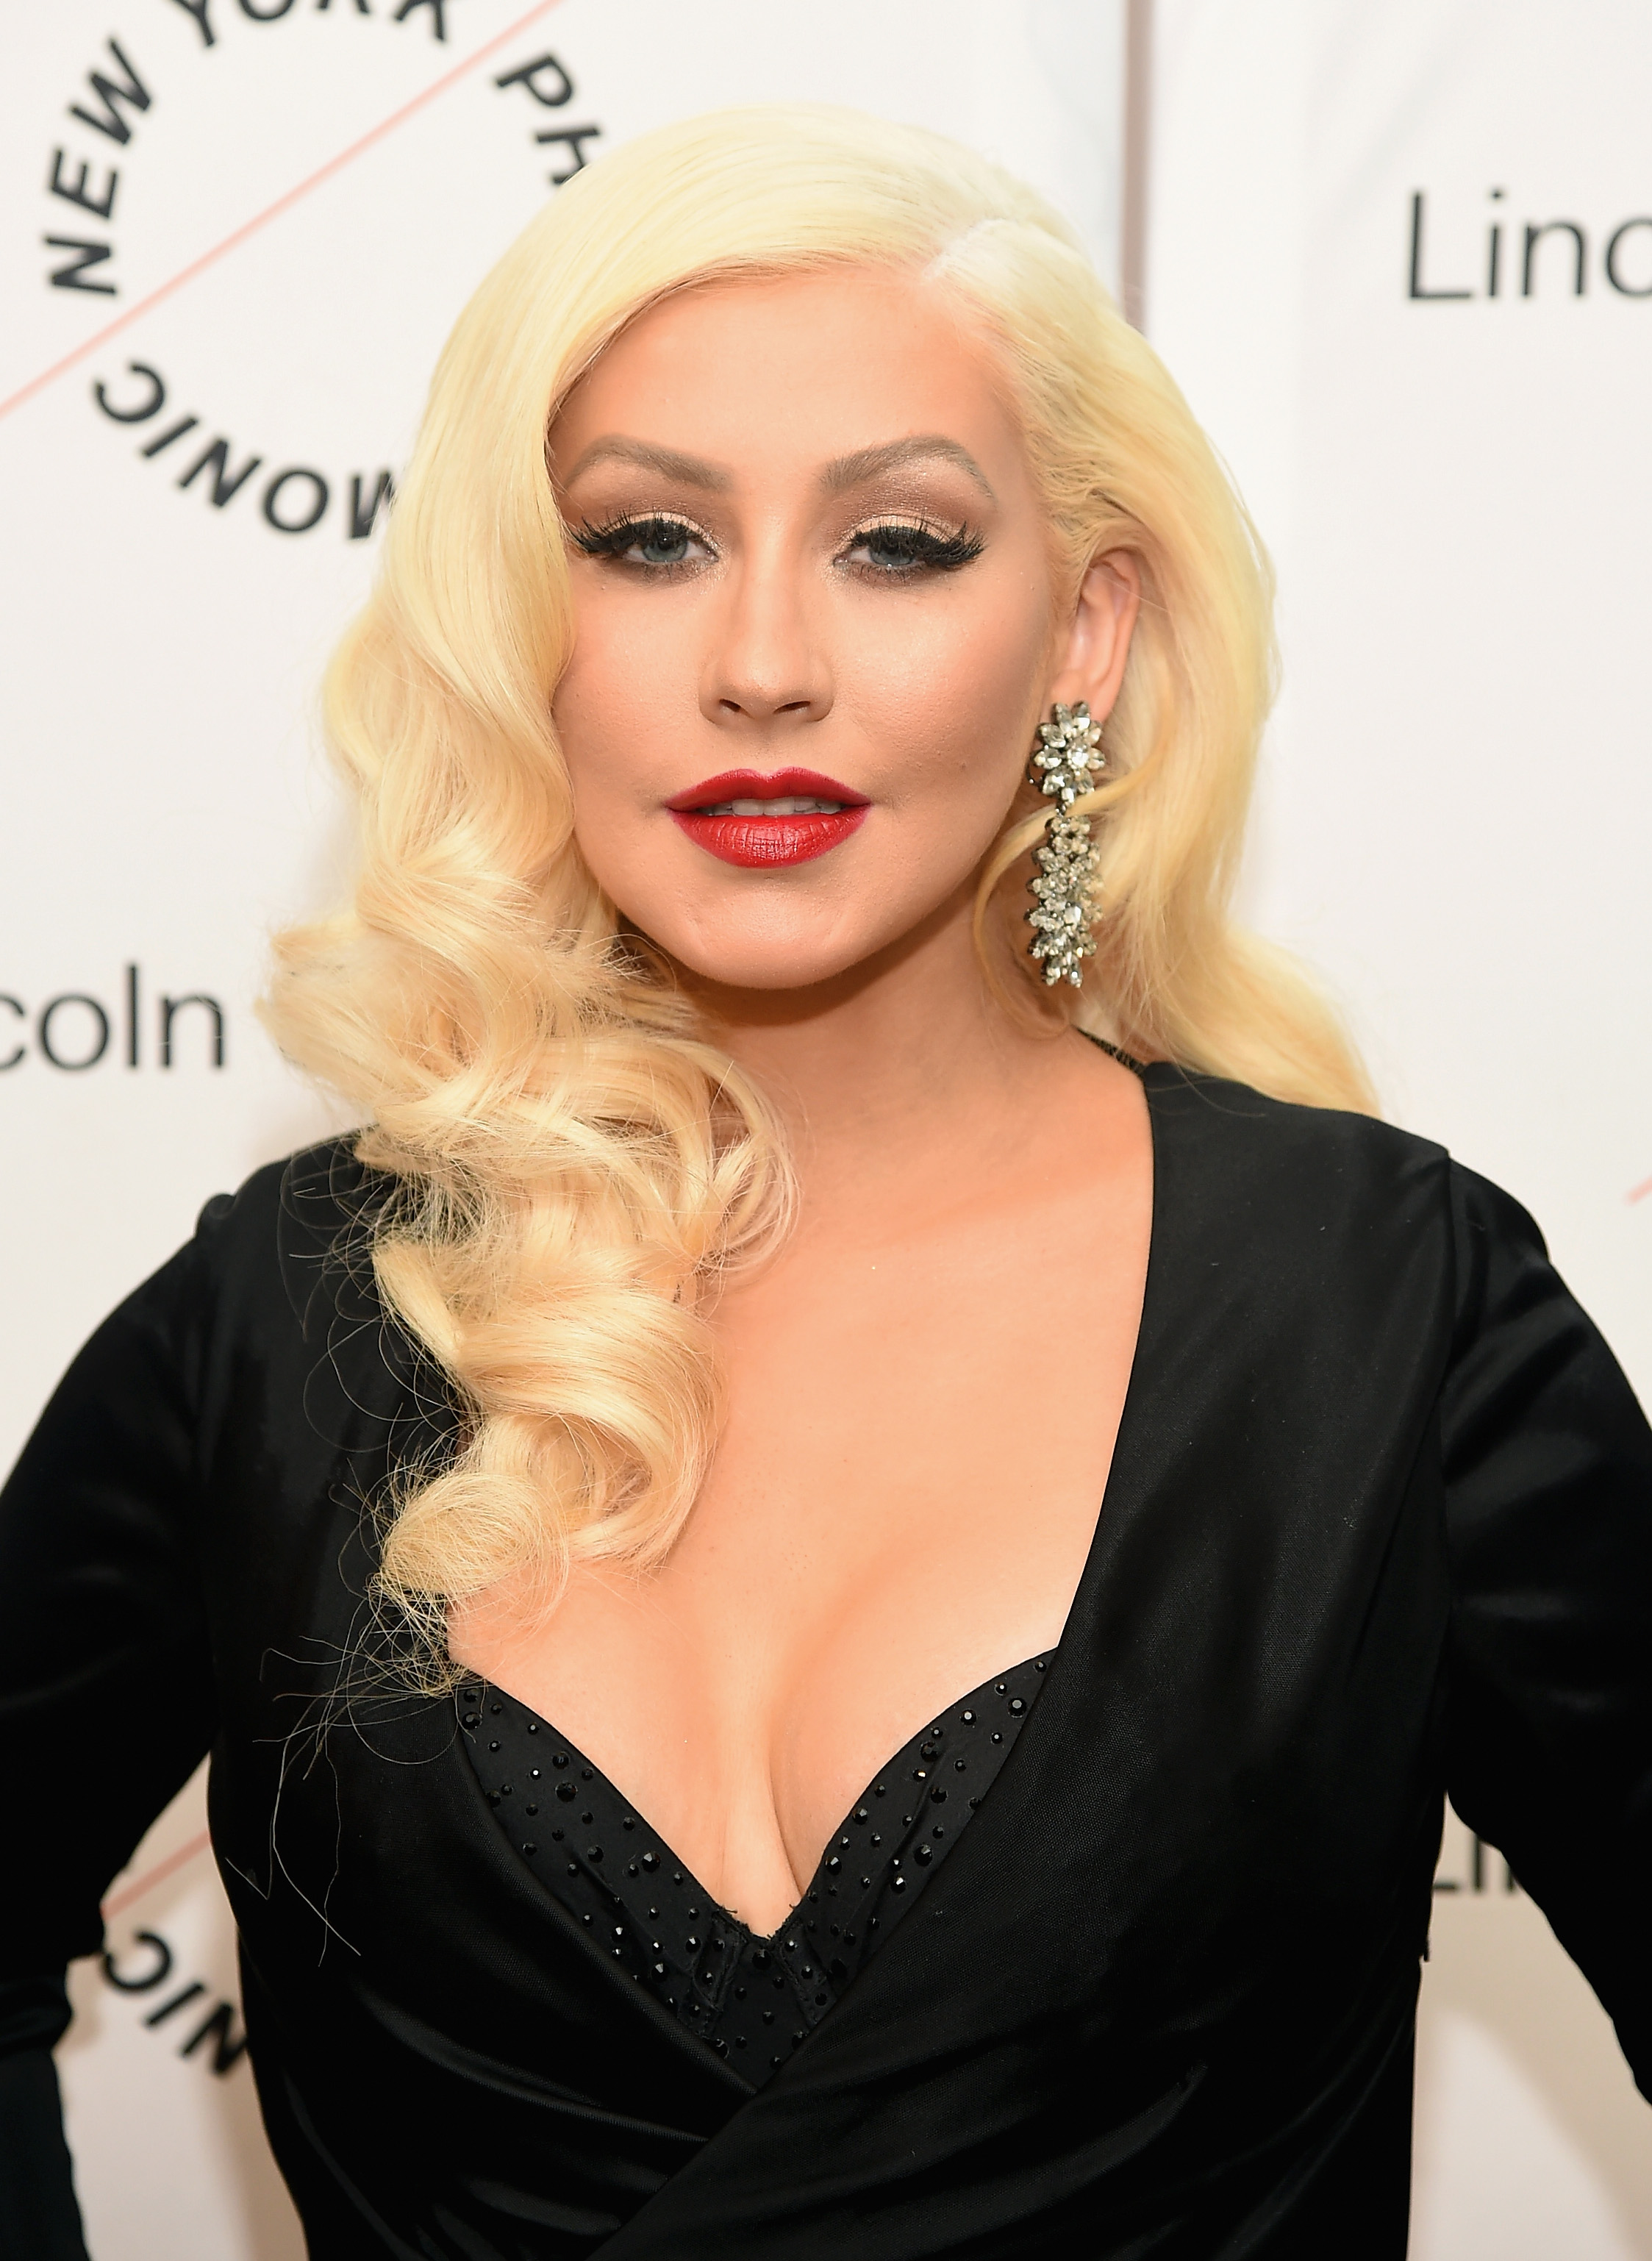 Christina Aguilera Just Dyed Her Hair Very, VeryRed